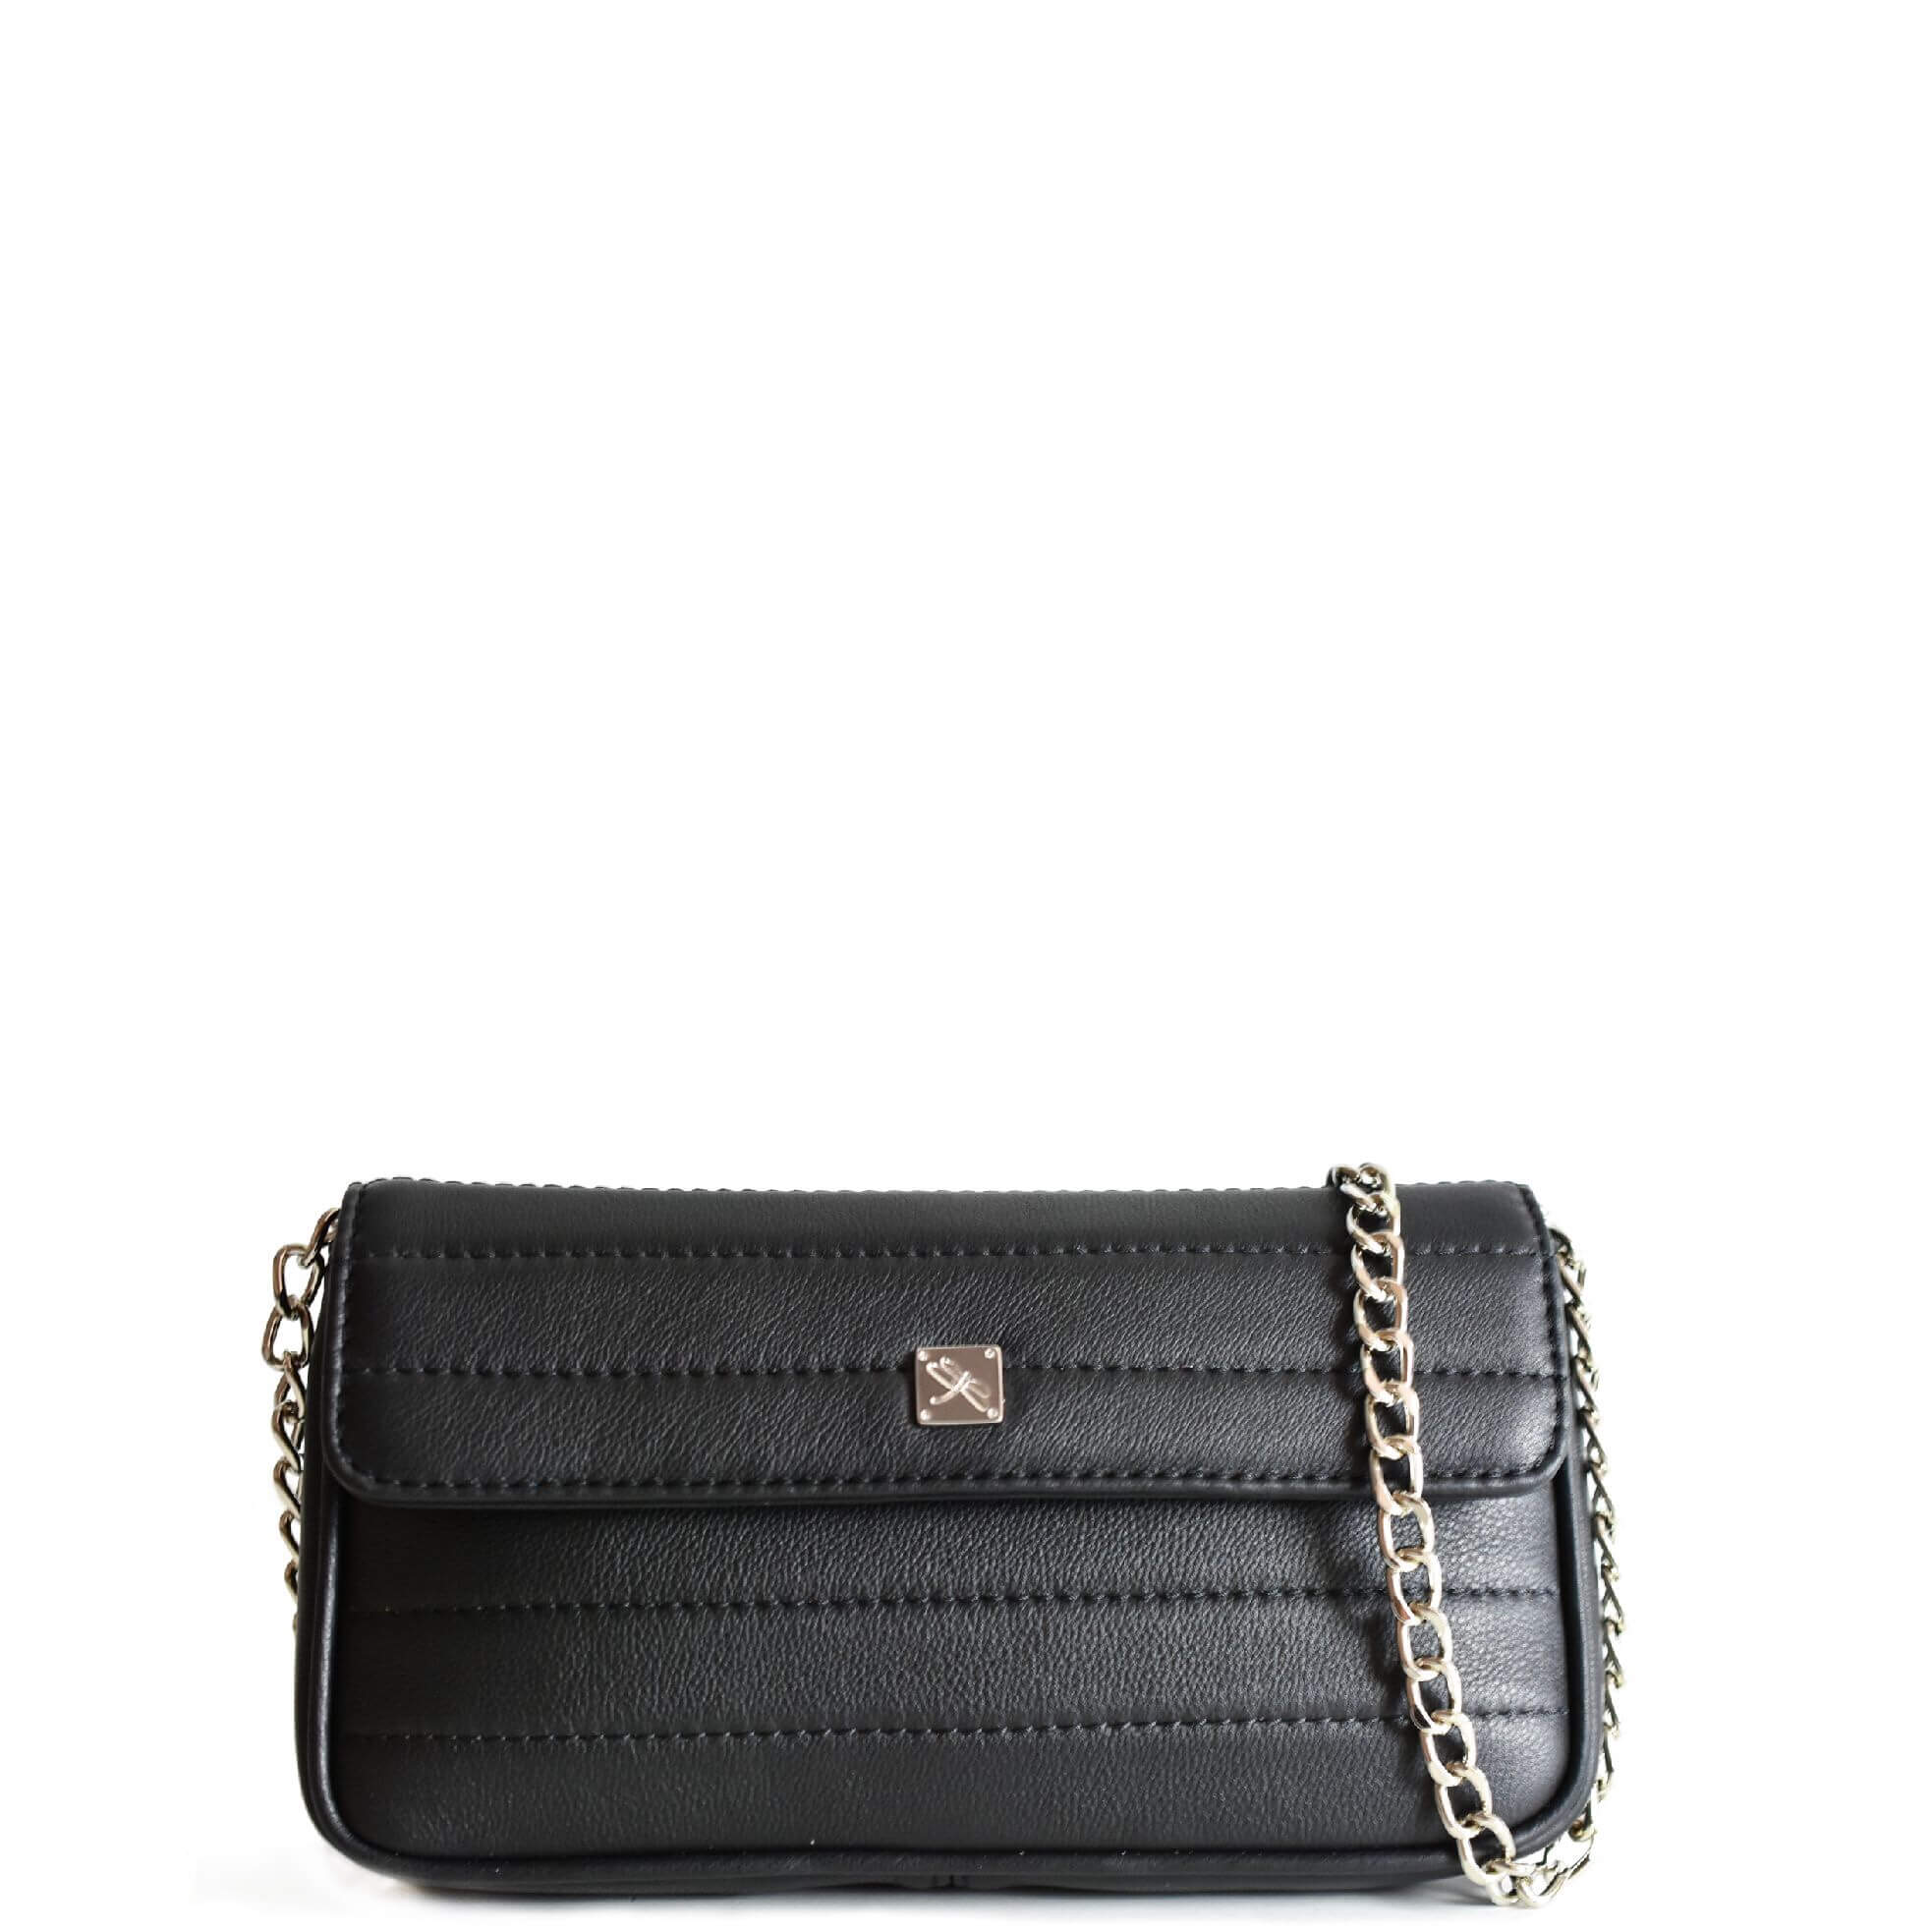 Black Mini Crossbody with Chain. Viena S